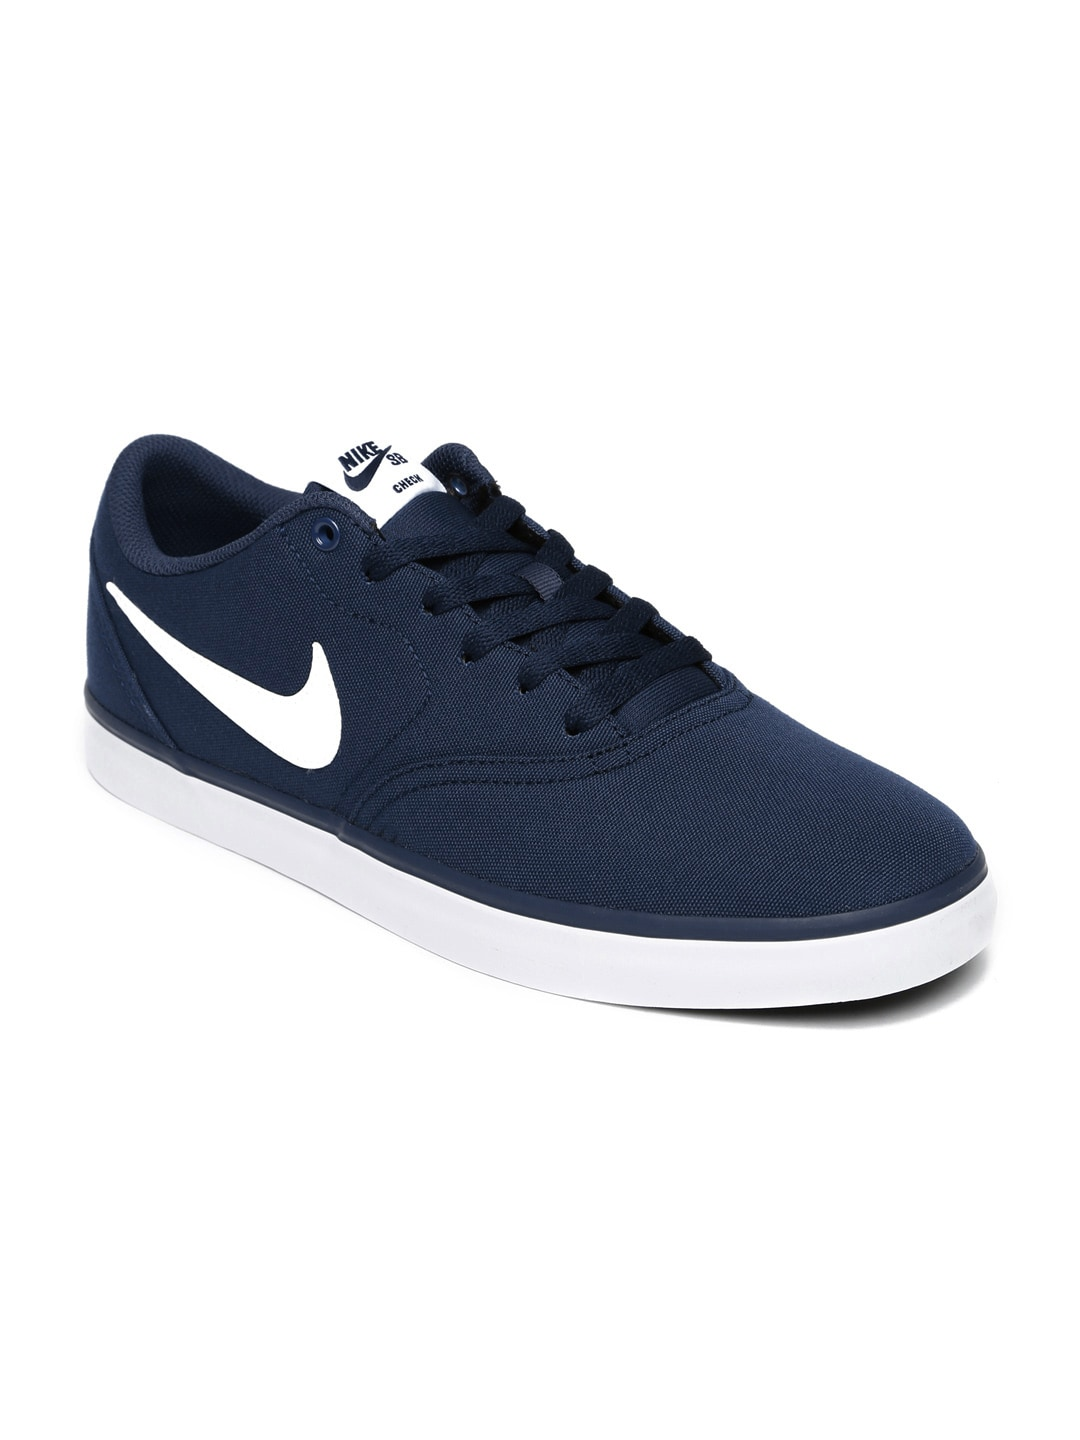 Nike Men Navy Blue SB Check Solar Canvas Sneakers image